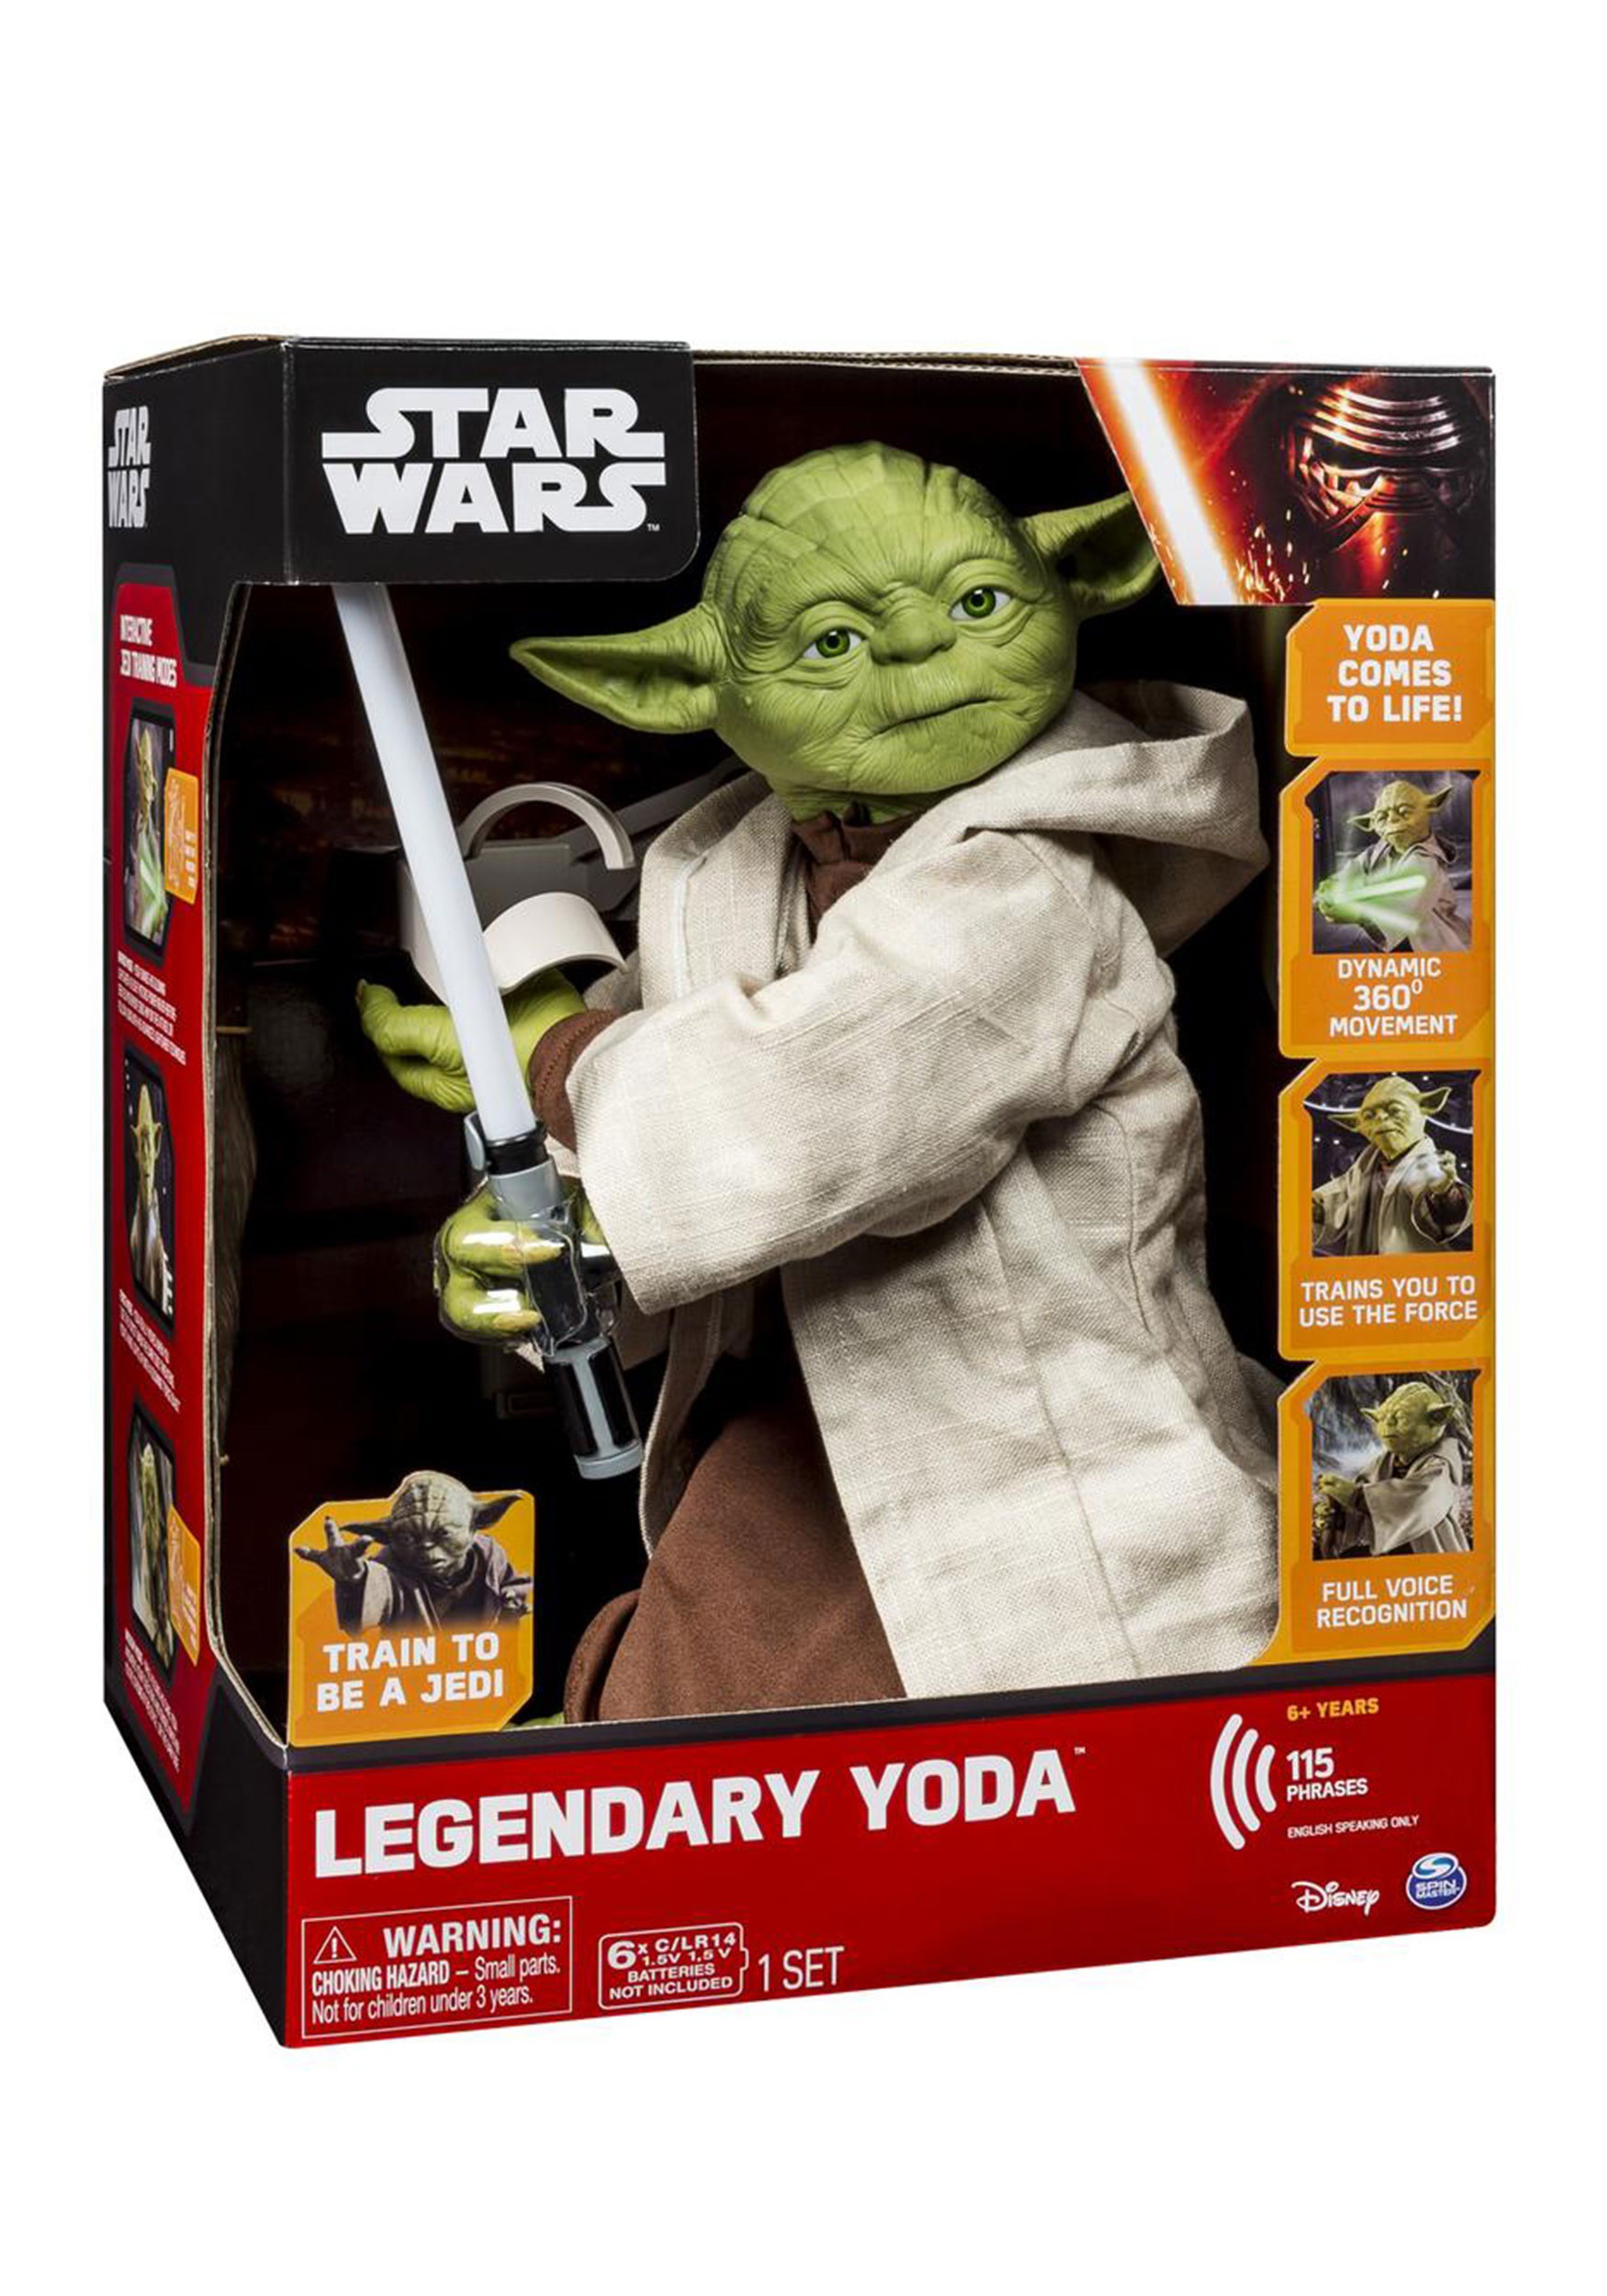 Star Wars Legendary Yoda Trainer SA6025110